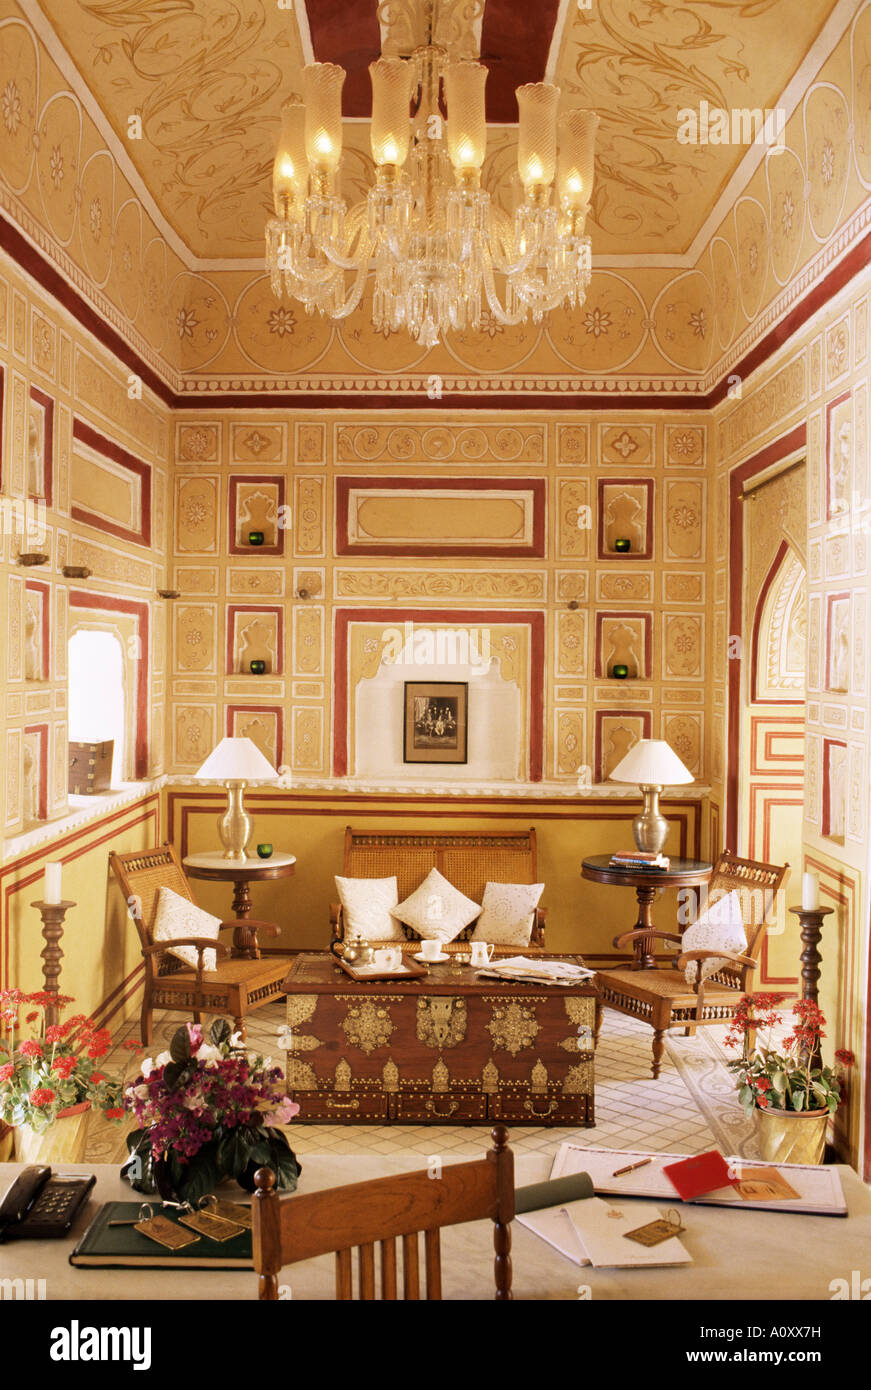 Reception Area For Arriving Guests With Reproduction Colonial Style  Furniture Painted Walls And Ceiling Samode Palace Hotel